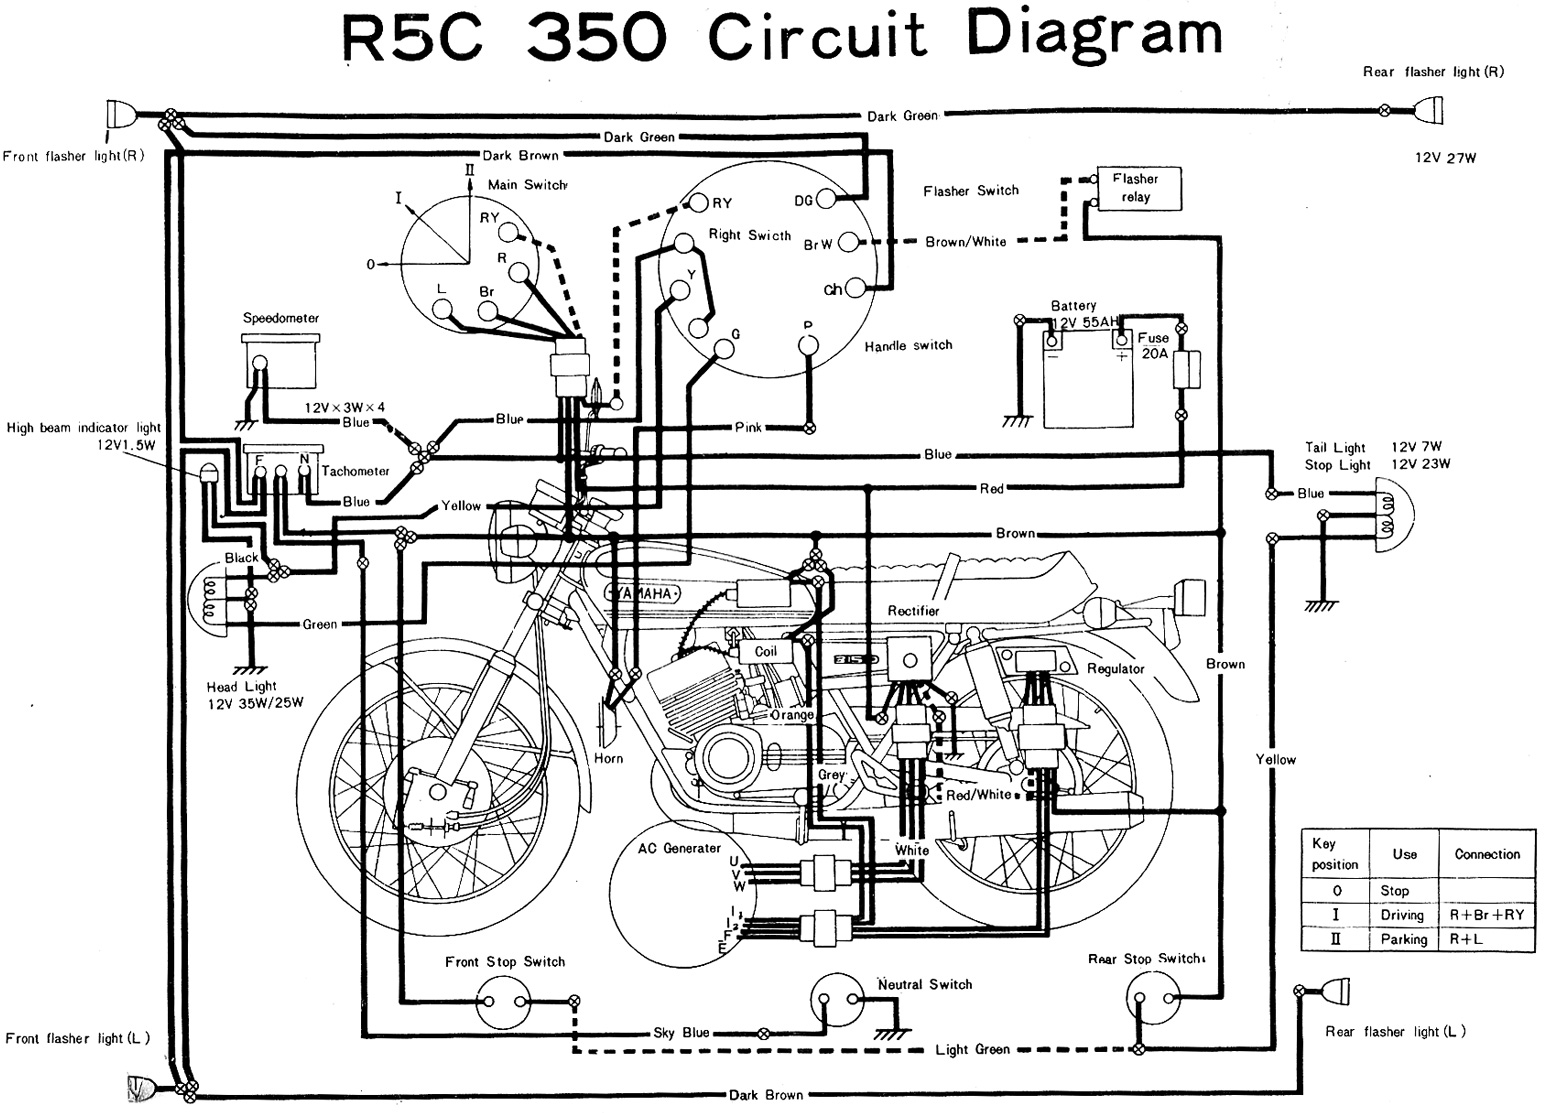 Intrepid Ignition Wiring Diagram Get Free Image About Wiring Diagram